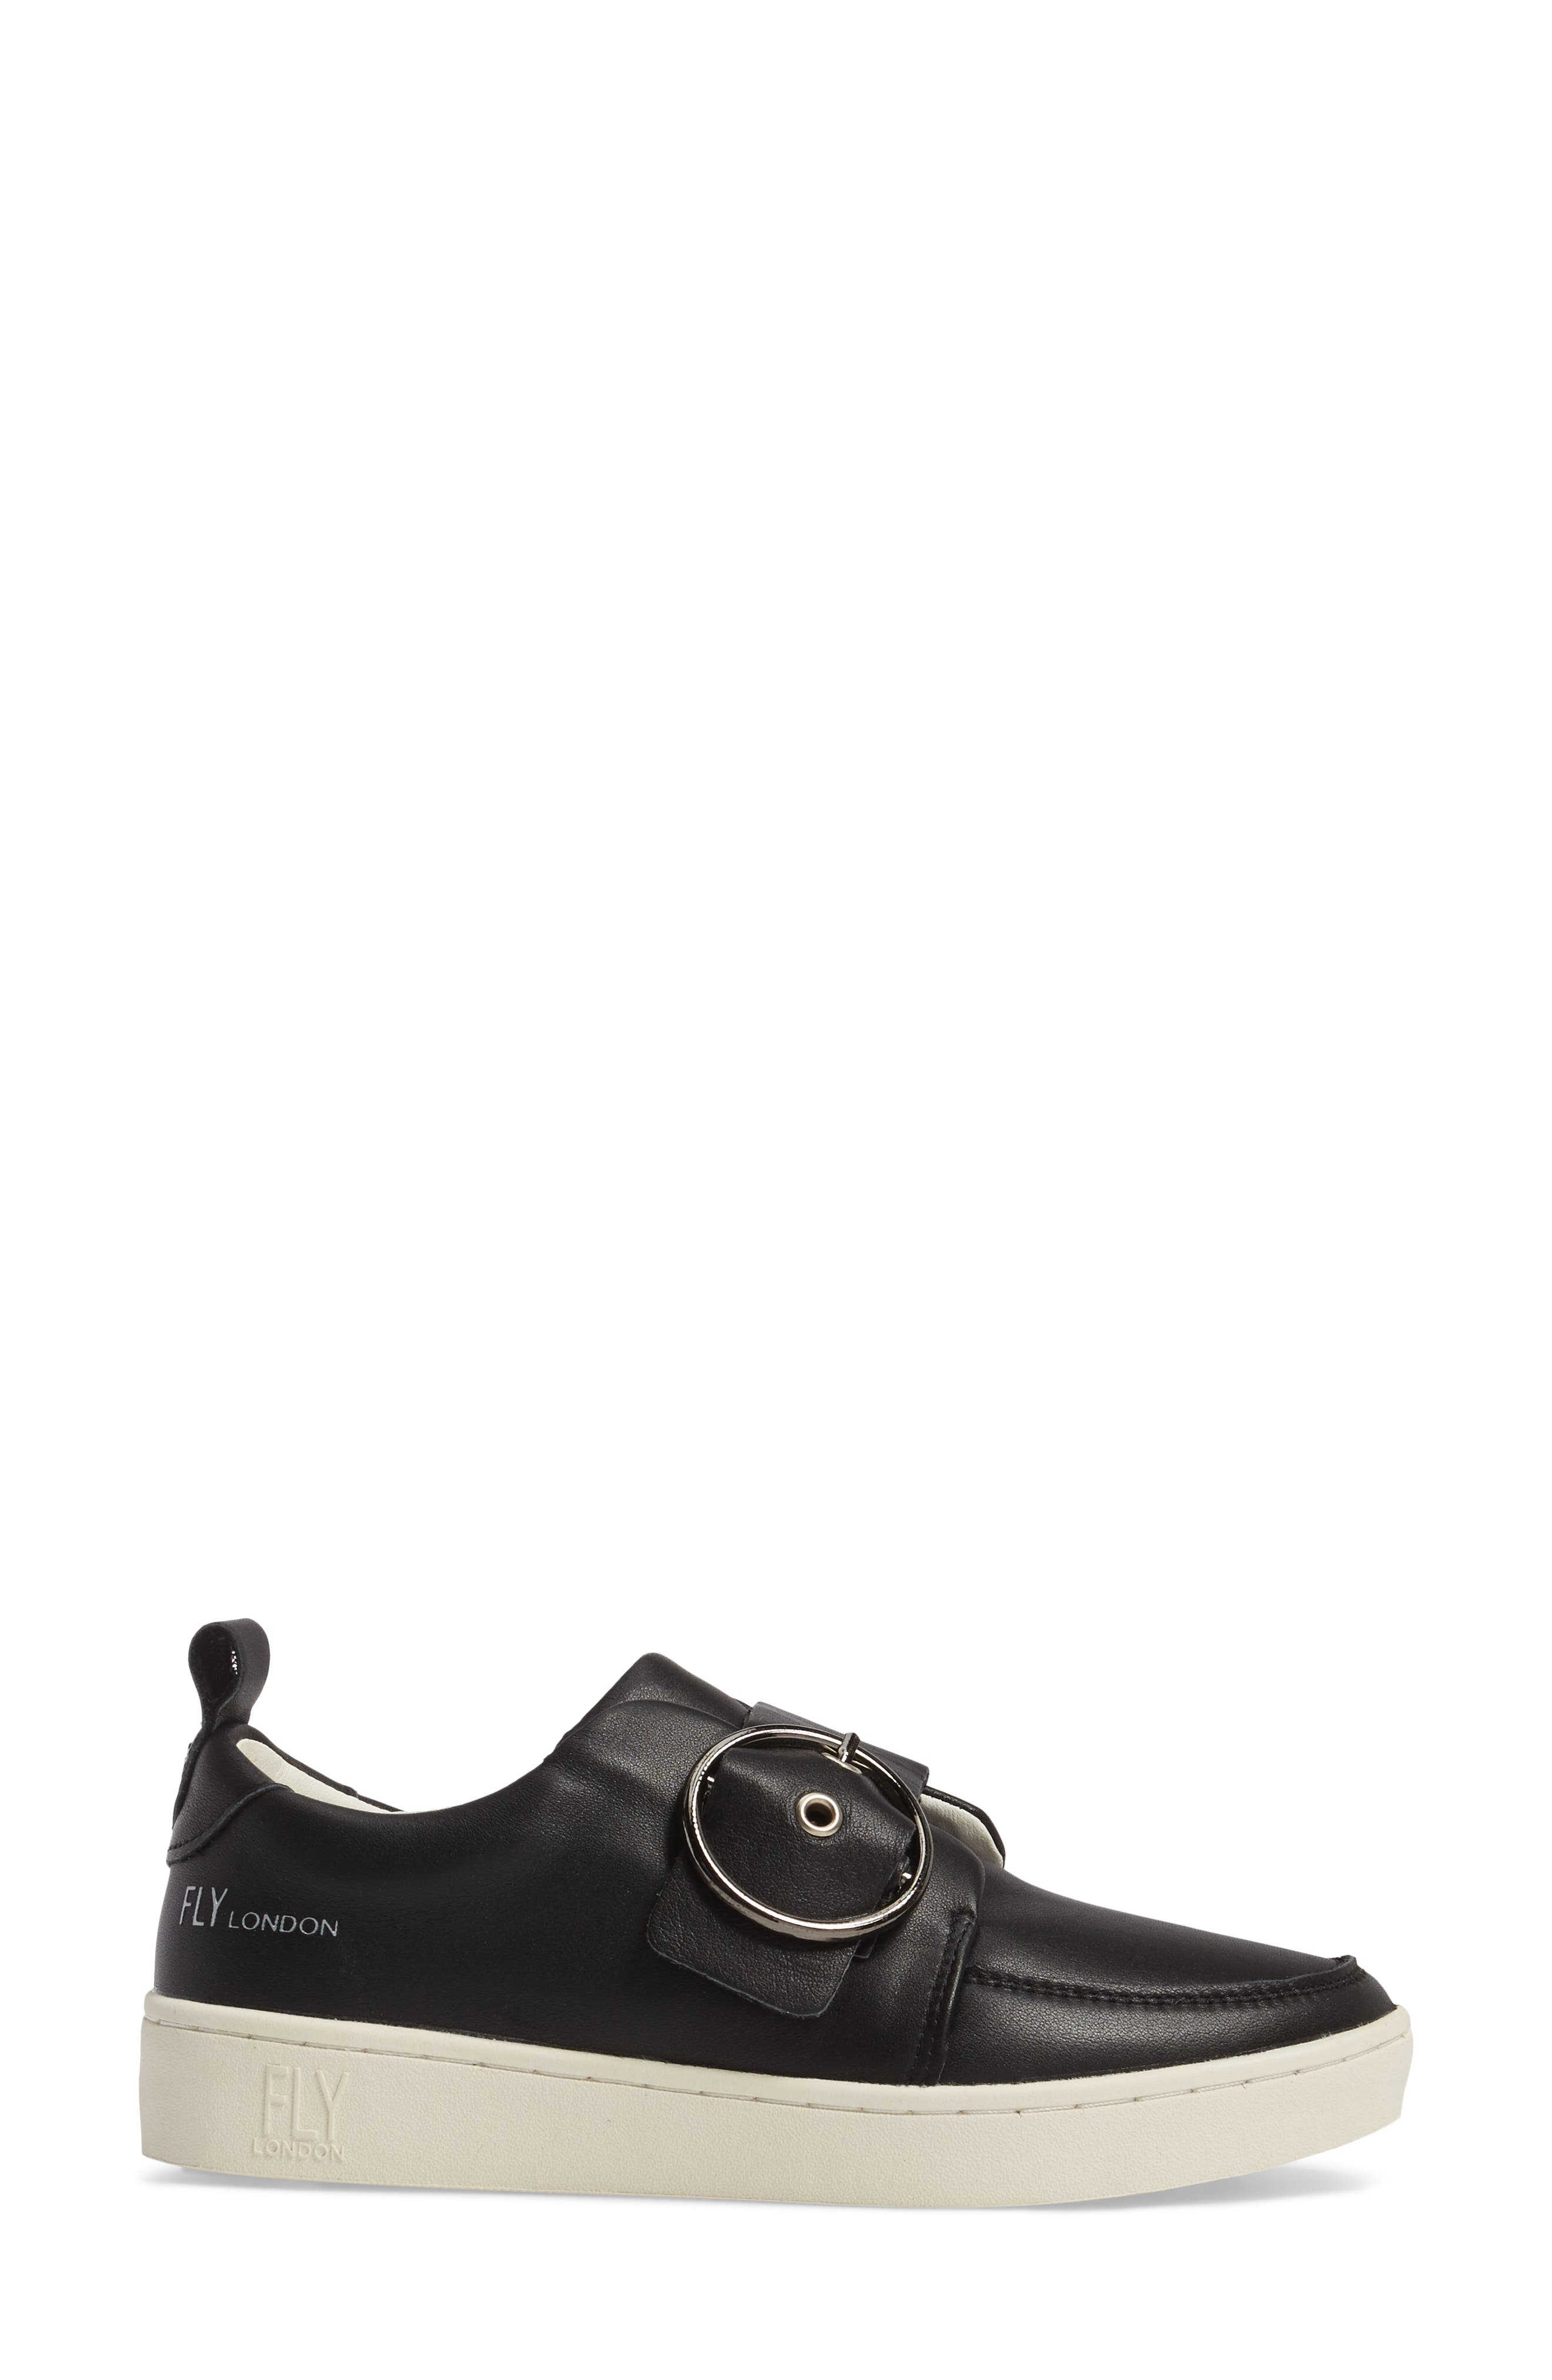 Mice Buckle Sneaker,                             Alternate thumbnail 3, color,                             Black Leather